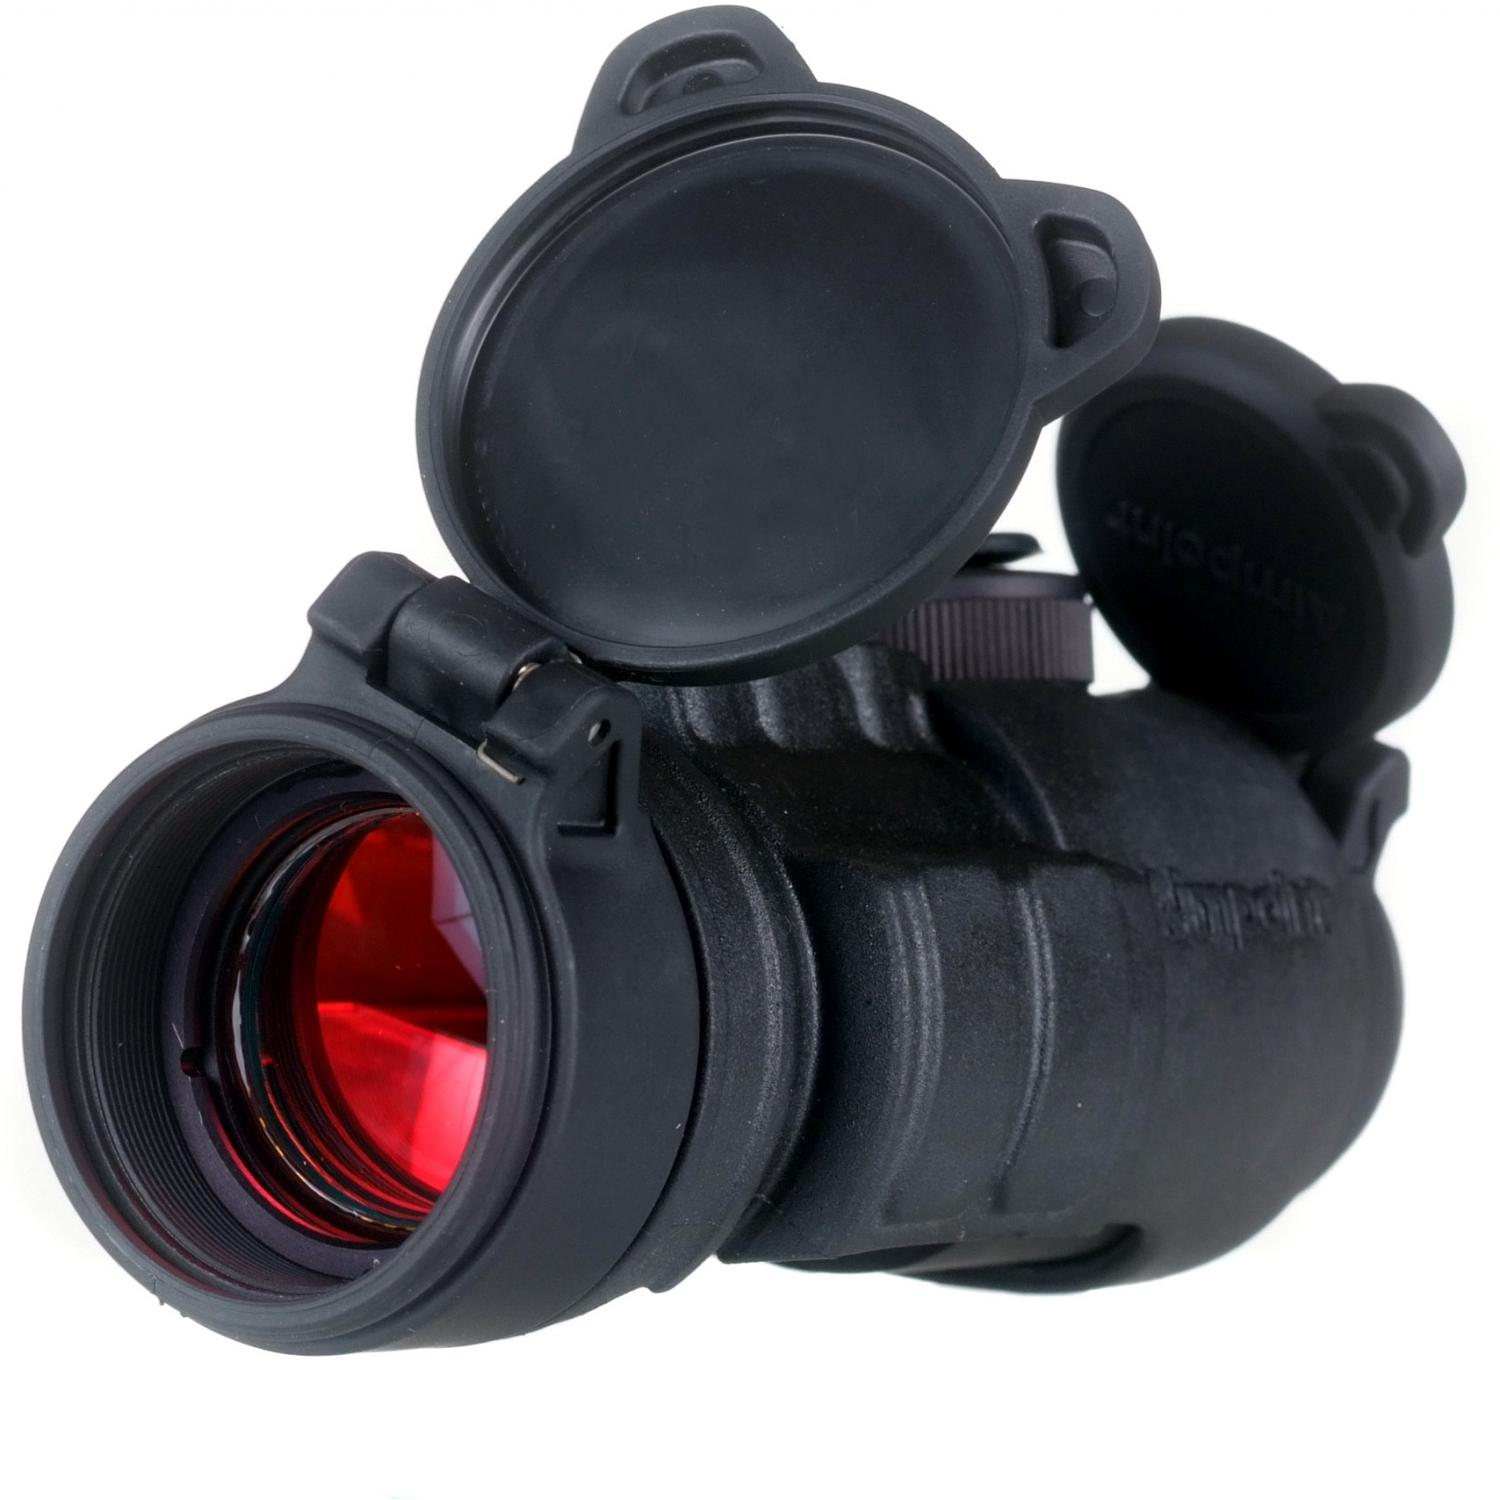 Picture of Aimpoint CompM3 Red Dot 2 MOA Sight Riflescope - Black - 11408